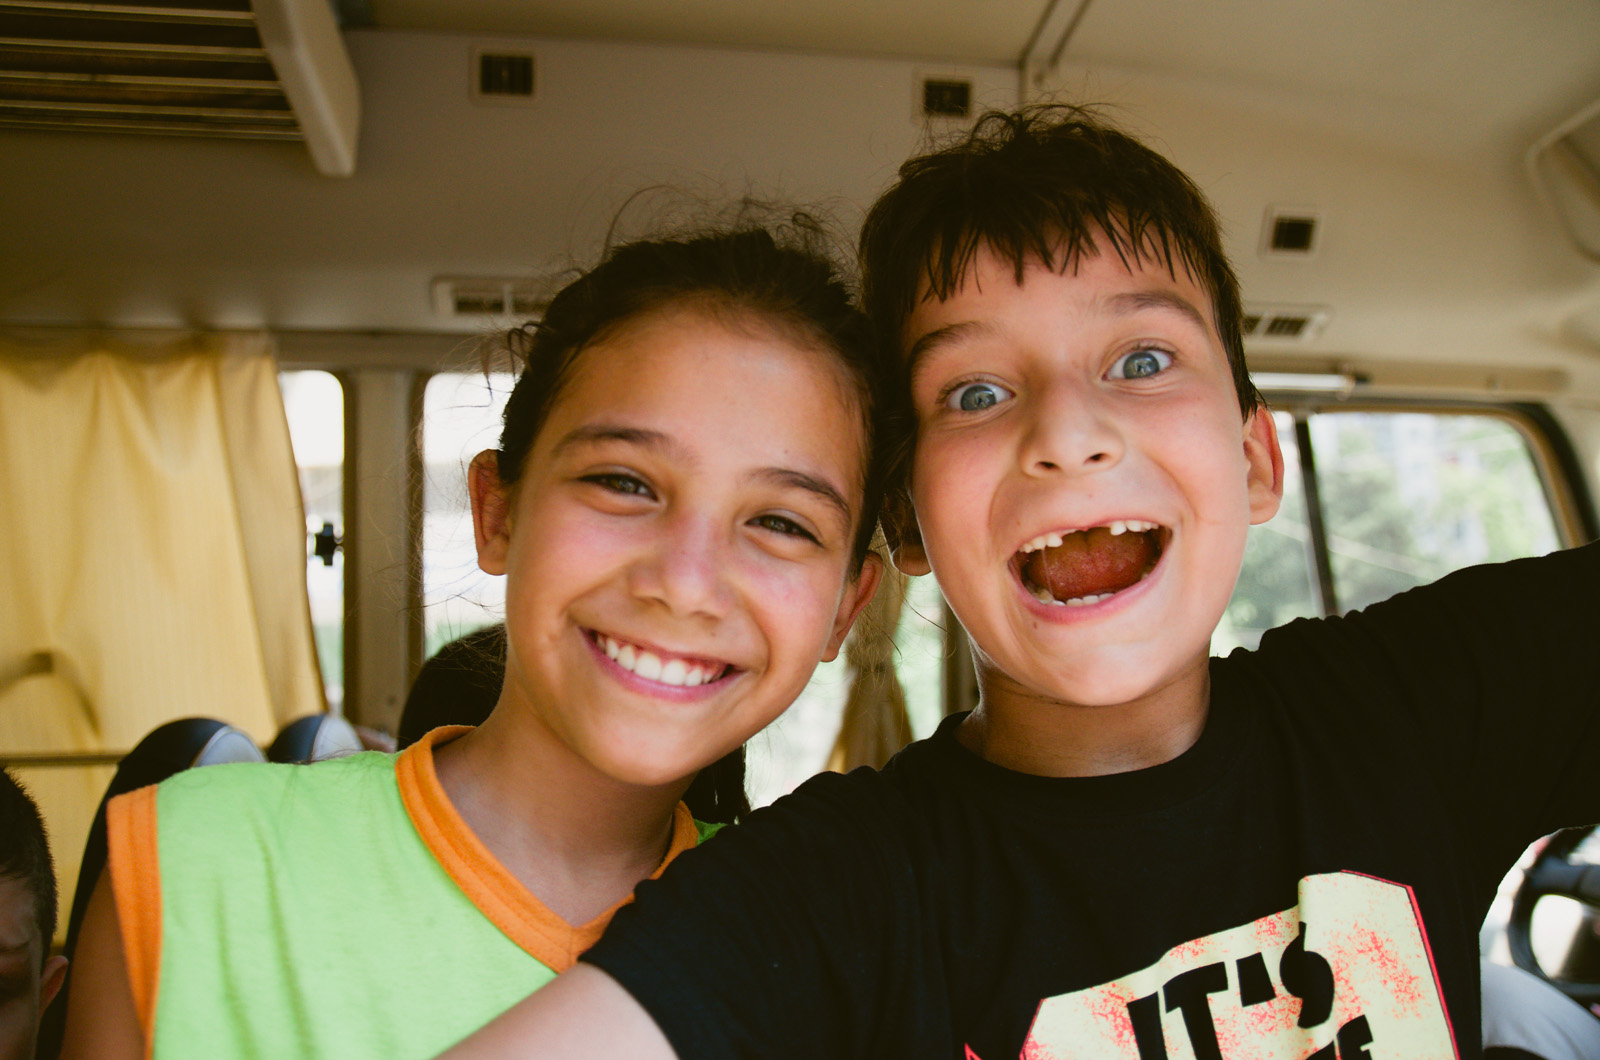 A girl (left) and a boy (right) smile for the camera.